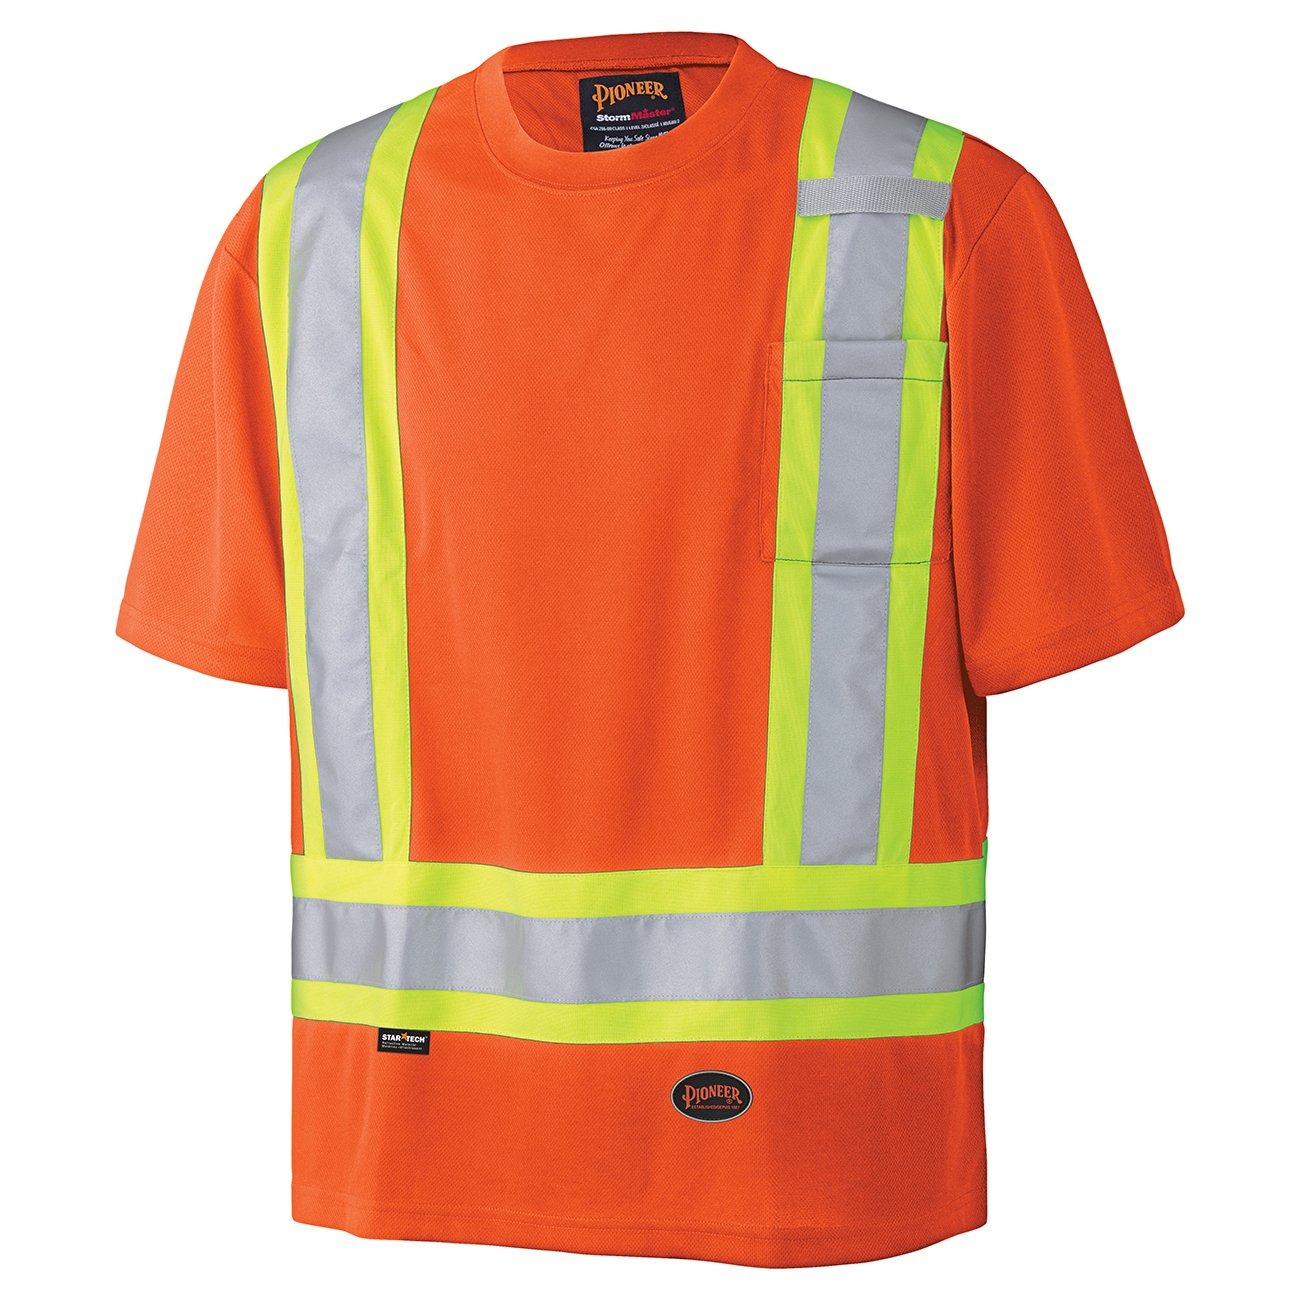 Pioneer V1051170-3XL Birdseye Reflective Safety T-Shirt, Black, 3XL